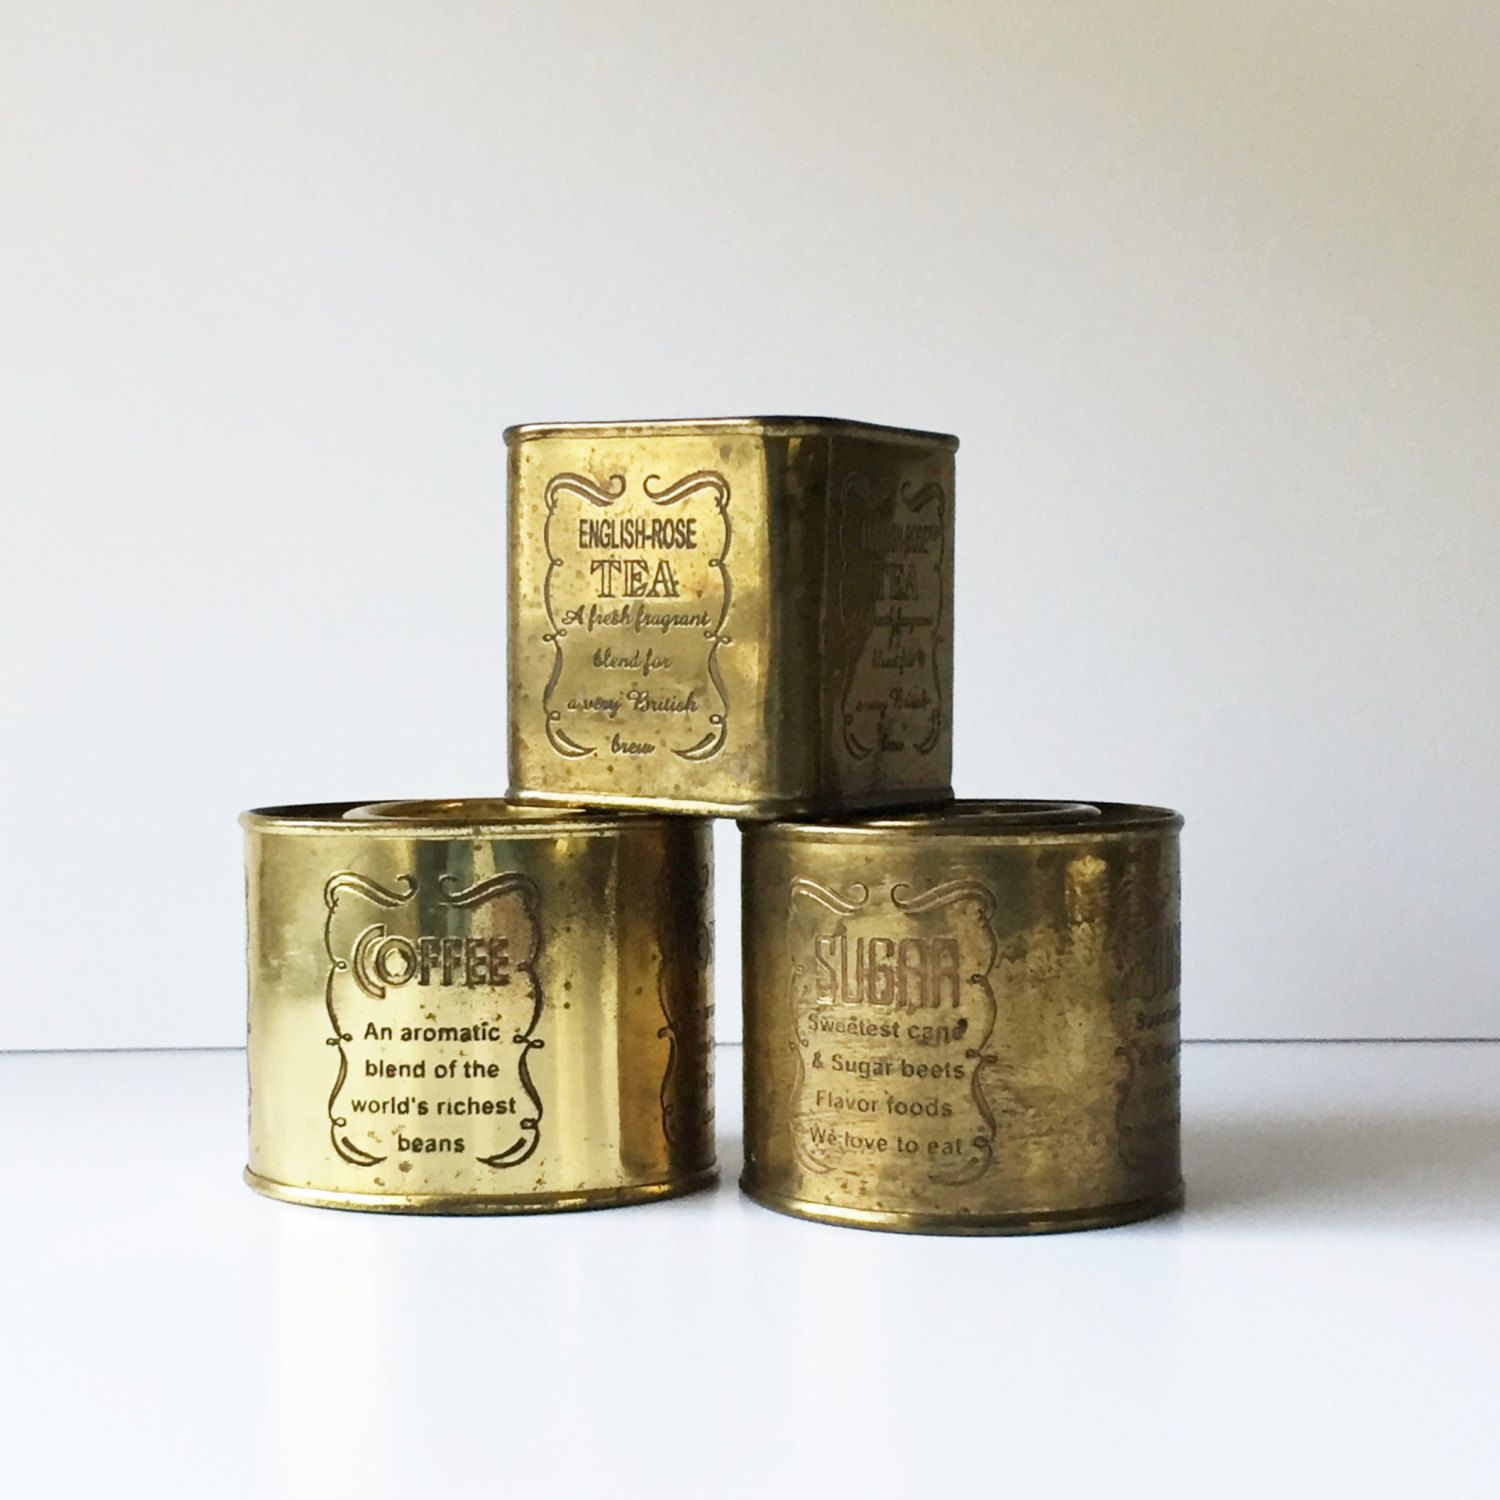 Tea Tins Vintage Brass Canisters Tea Coffee Sugar Canisters Brass